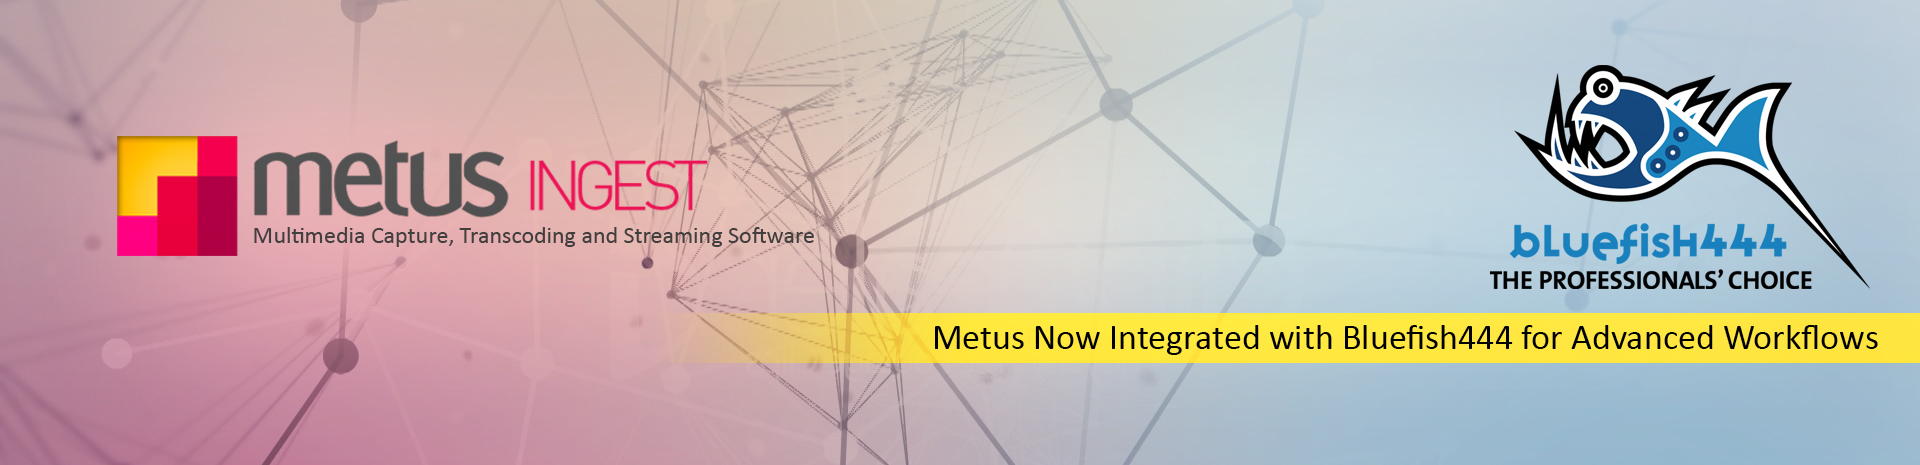 Metus INGEST Expands Support for High-Quality Workflows with BlueFish444